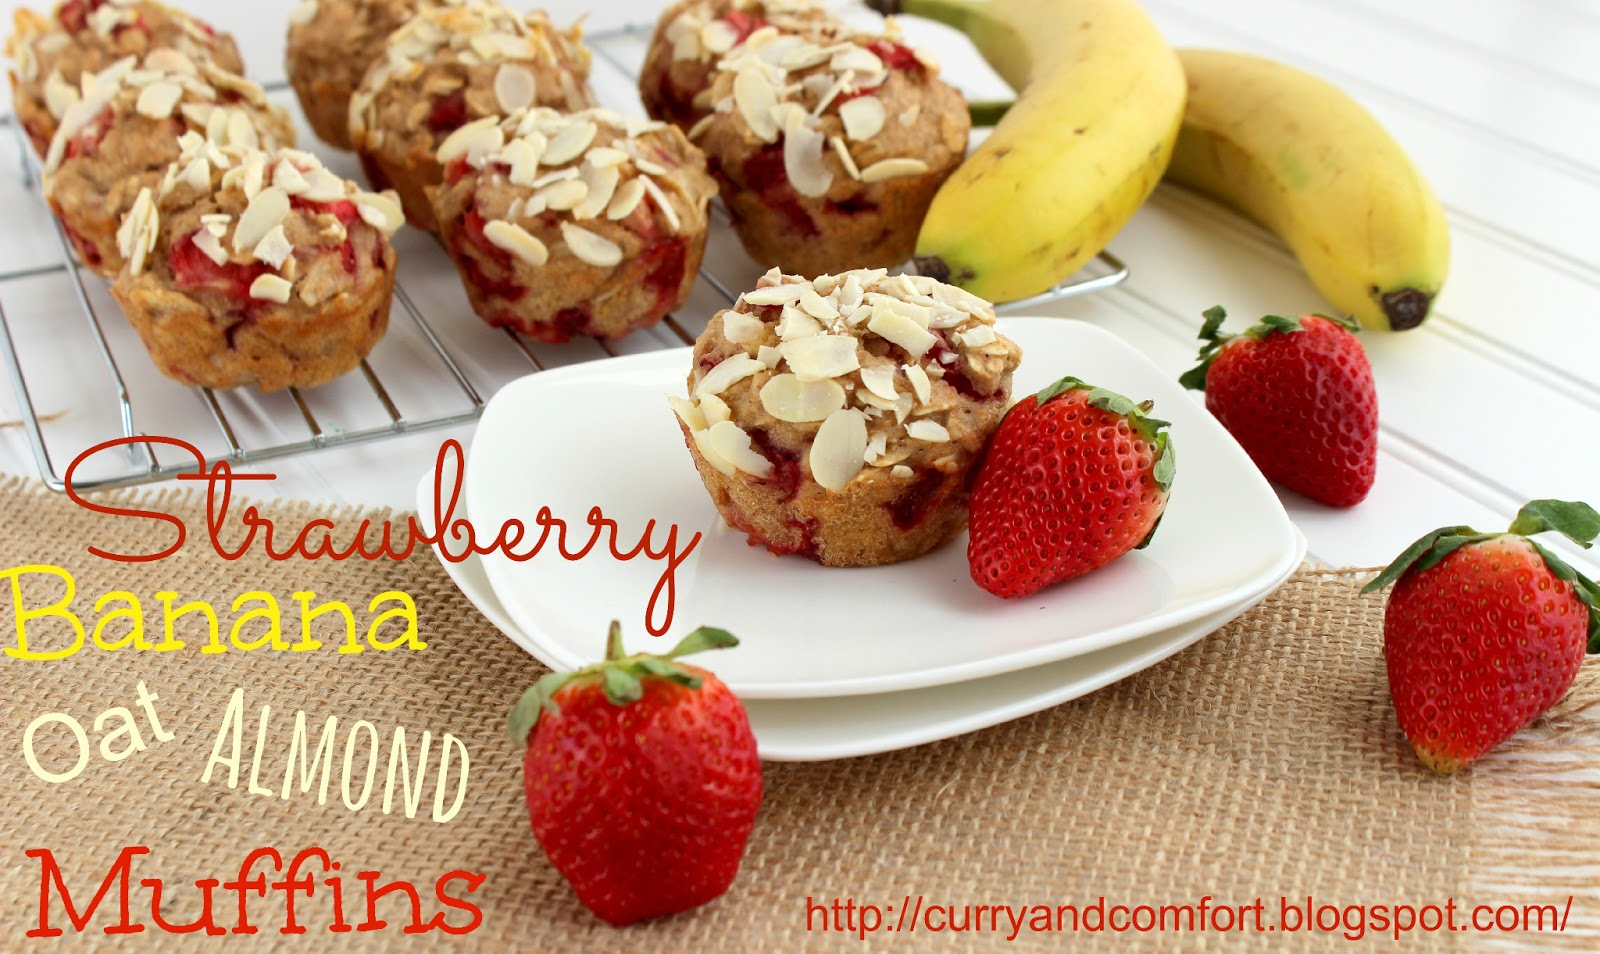 Kitchen Simmer: Strawberry Banana Oat Muffins with Almonds